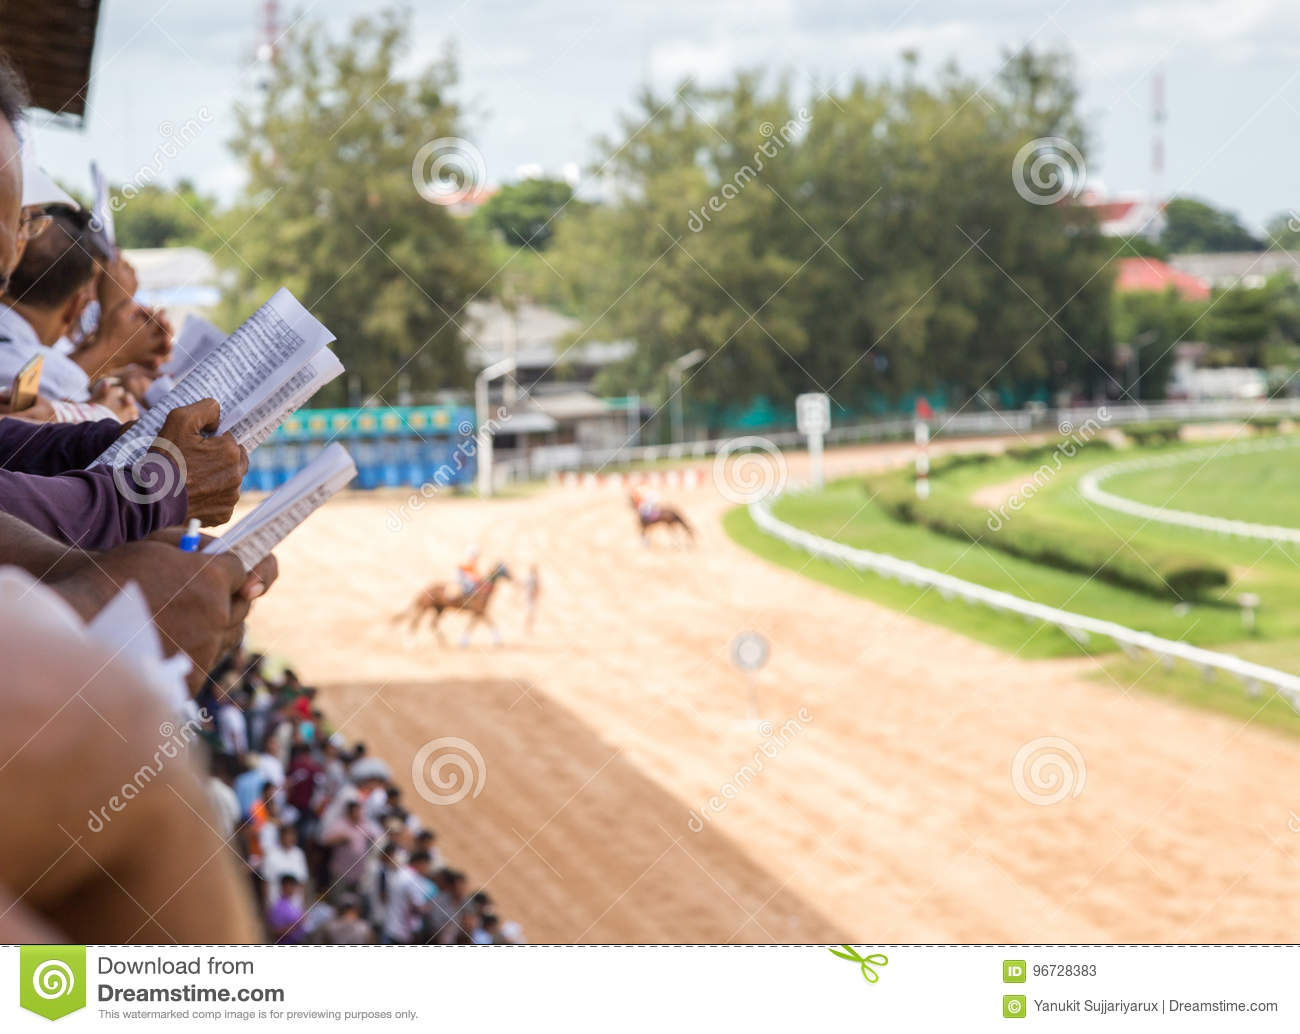 Horse racing game bet stock image  Image of competitor - 96728383